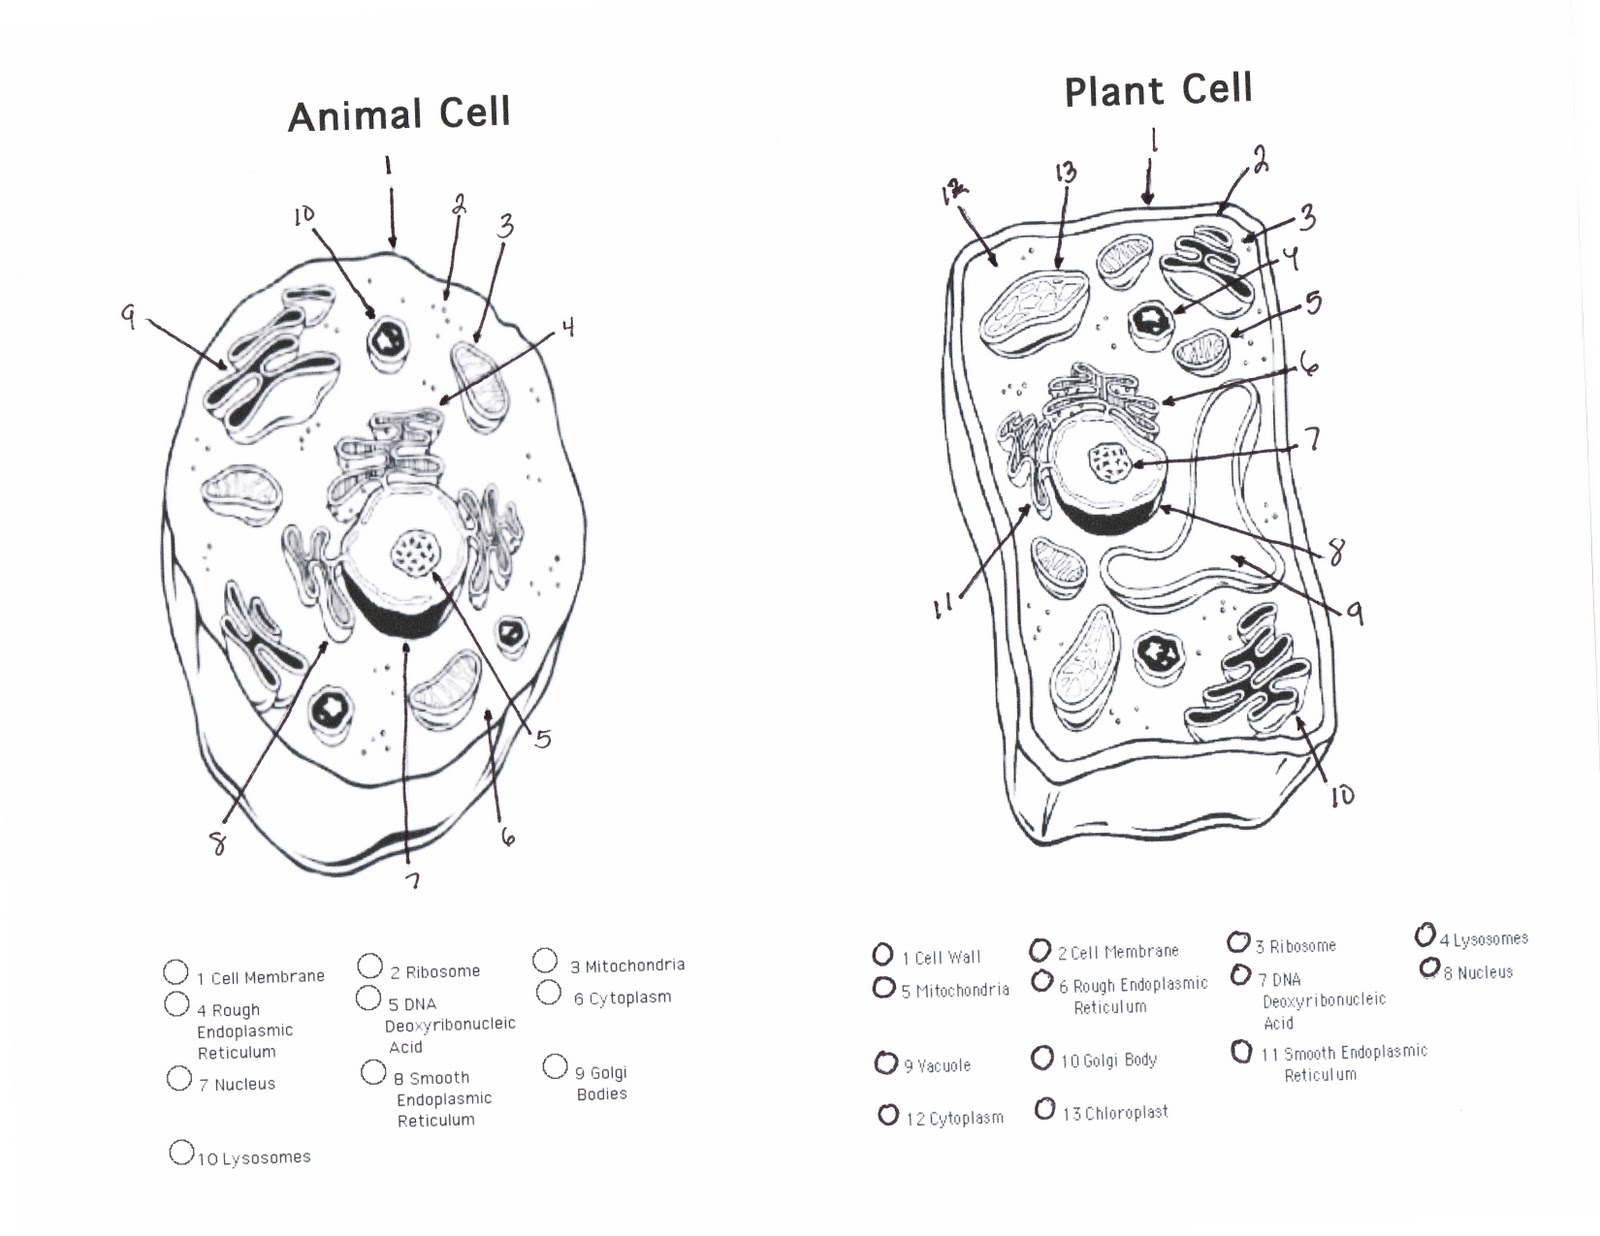 Worksheets Eukaryotic Cell Diagram Worksheets animal and plant cell worksheets coterraneo label worksheet secretlinkbuilding